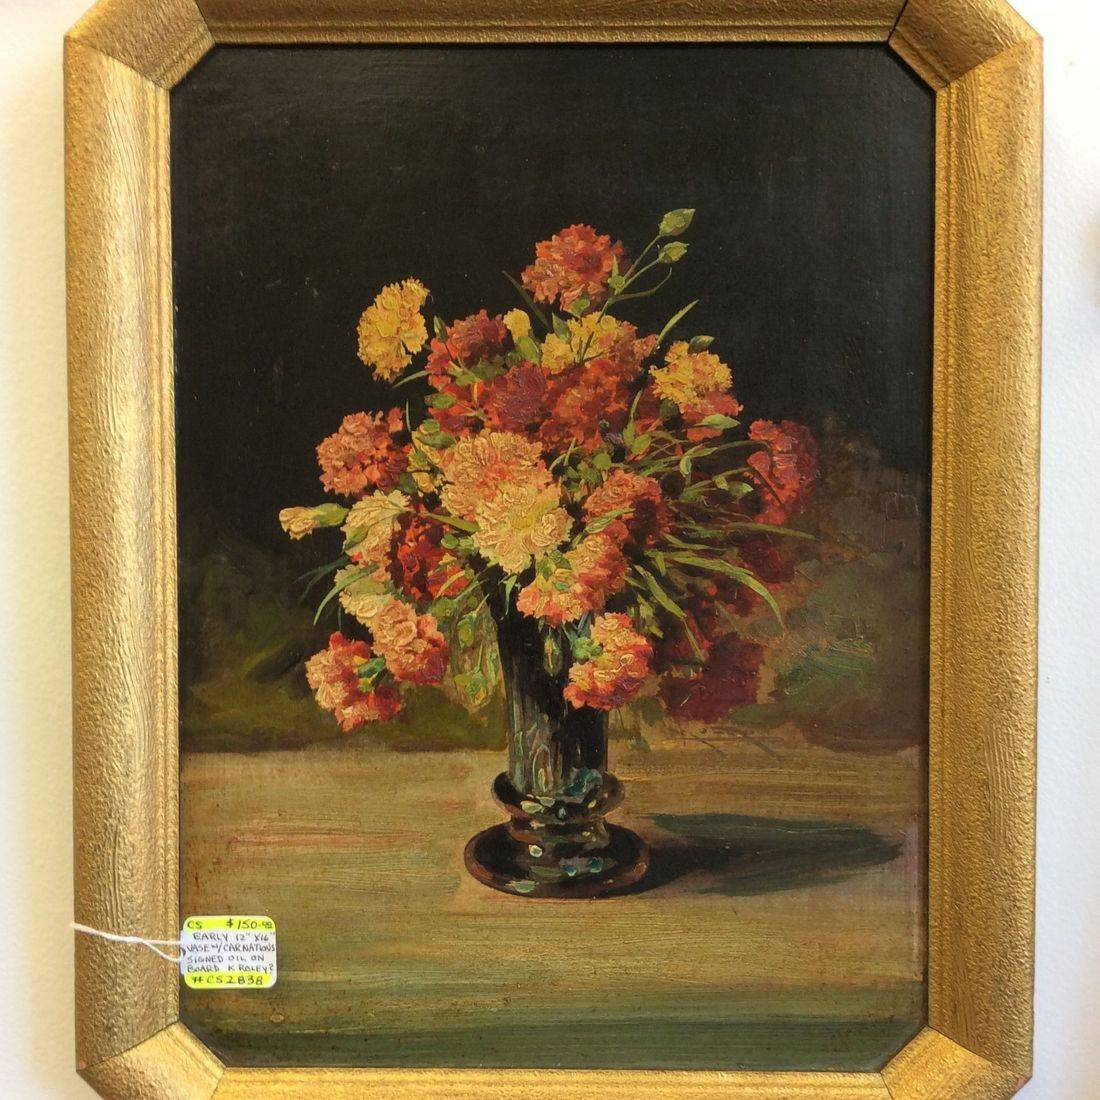 Vintage Vase w/Carnations Oil on Board signed K. Roley